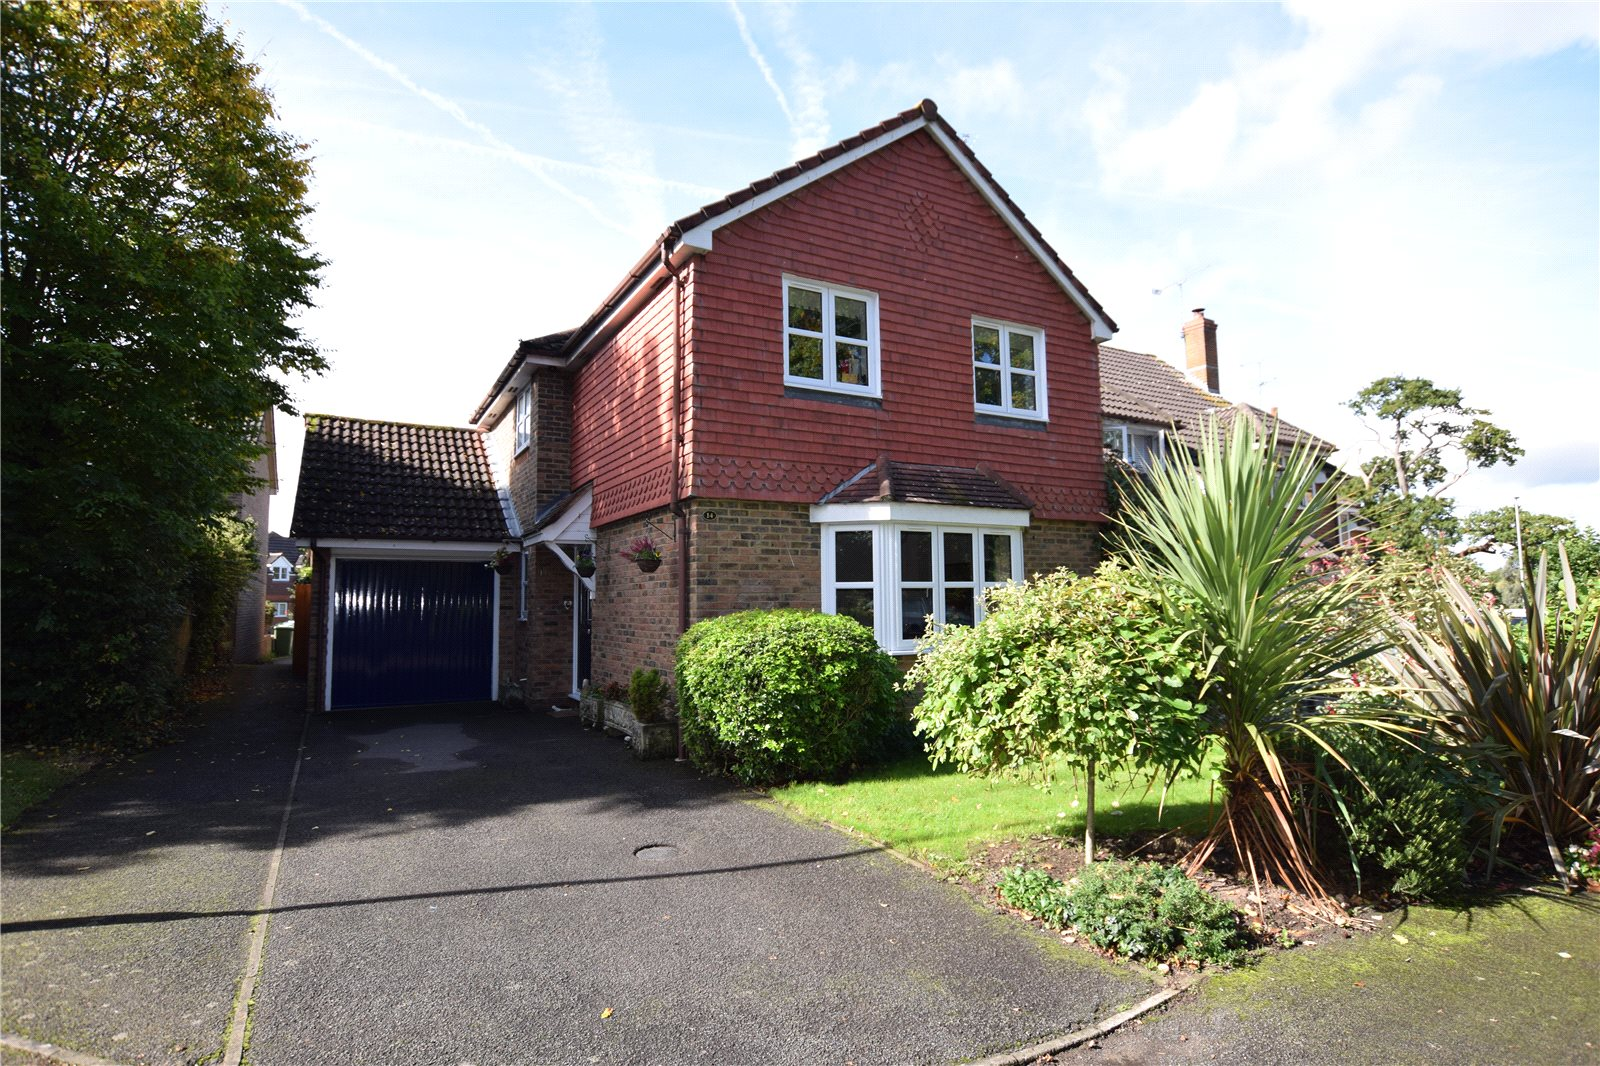 3 Bedrooms Detached House for sale in Culvercroft, Binfield, Berkshire, RG42